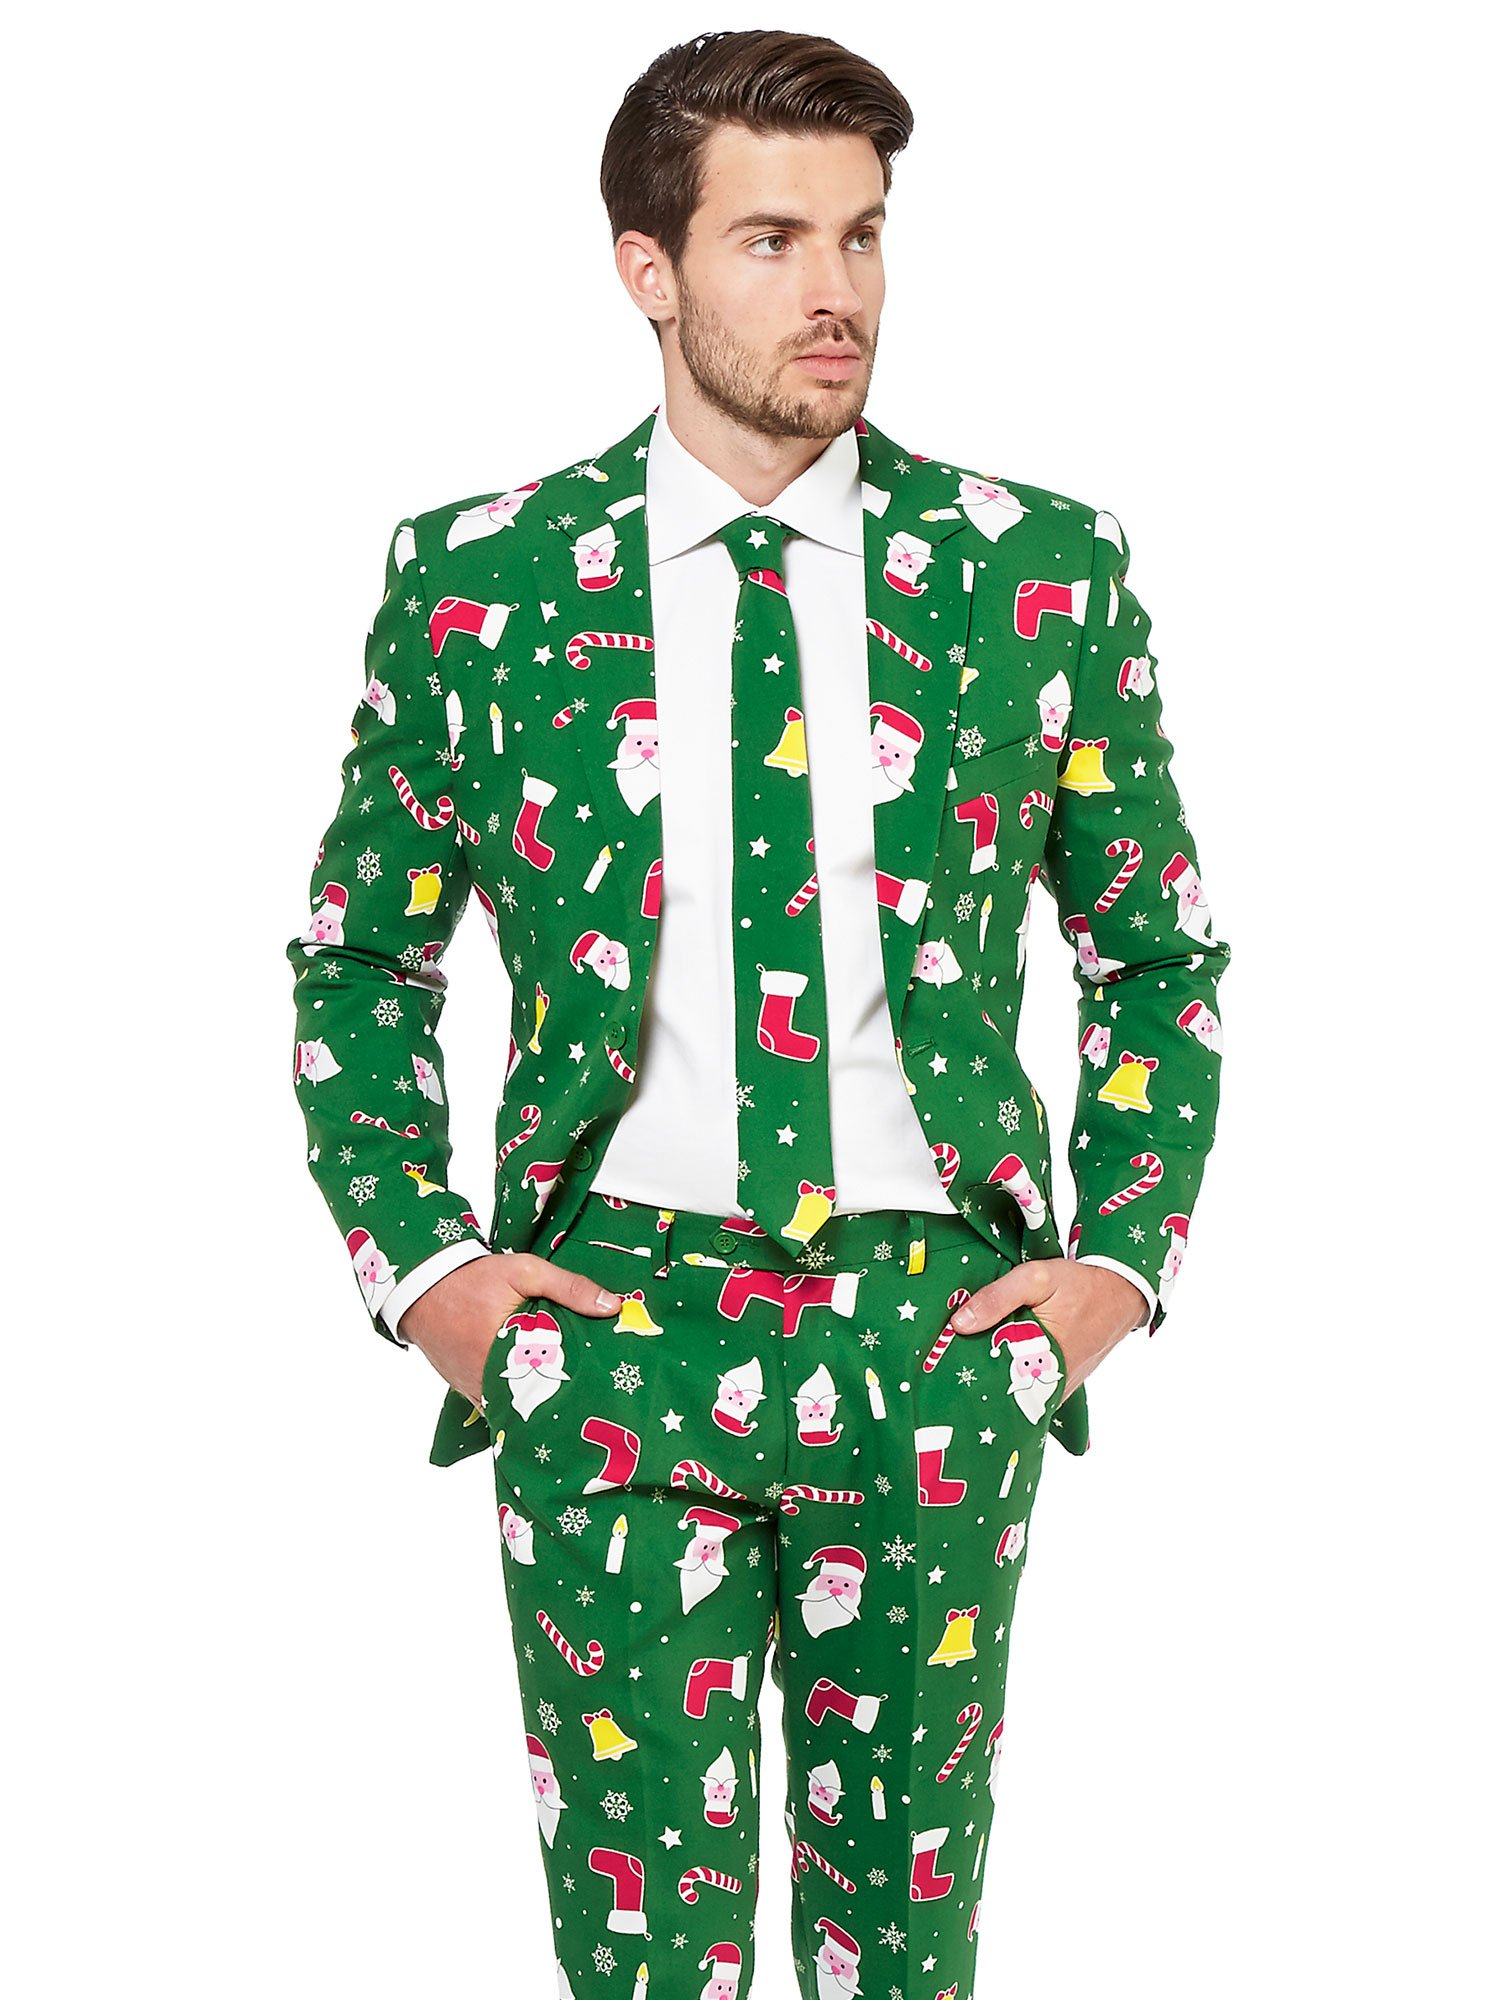 acbe36eef4f2 Galleon - OppoSuits Christmas Suits For Men In Different Prints – Ugly Xmas  Sweater Costumes Include Jacket Pants & Tie